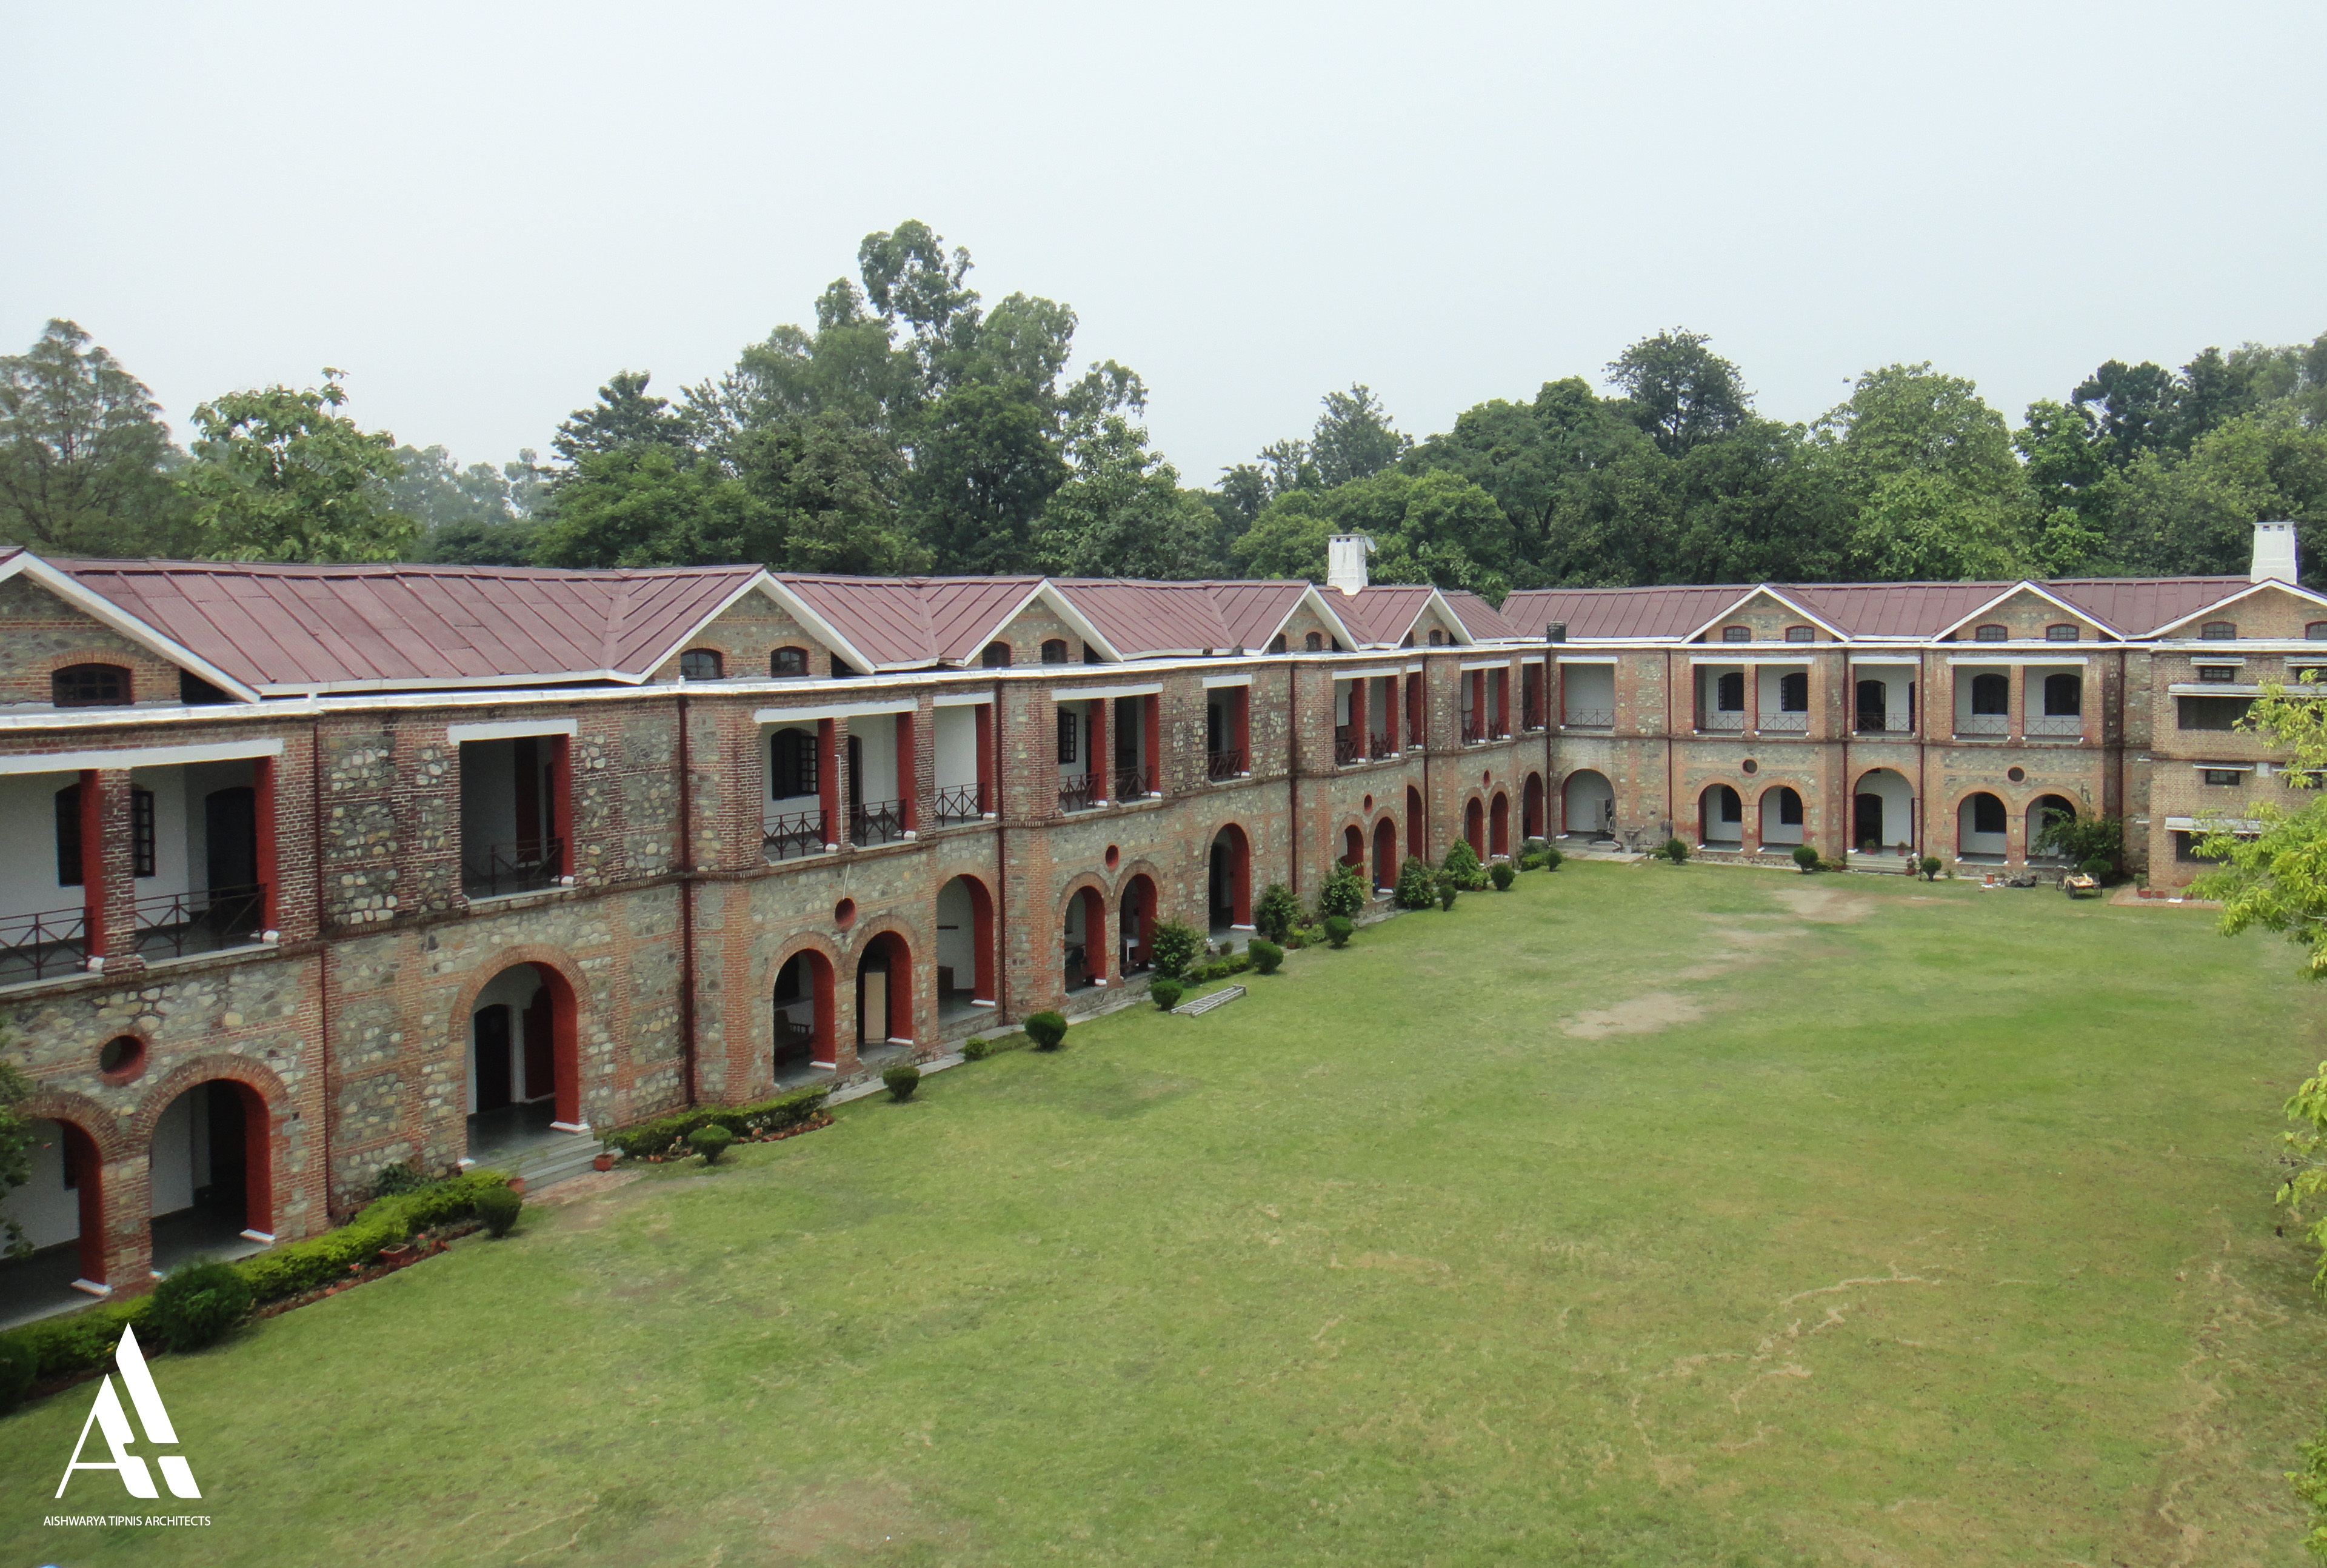 Conservation and interior up gradation plan for Hyderabad & Kashmir House, the Doon School